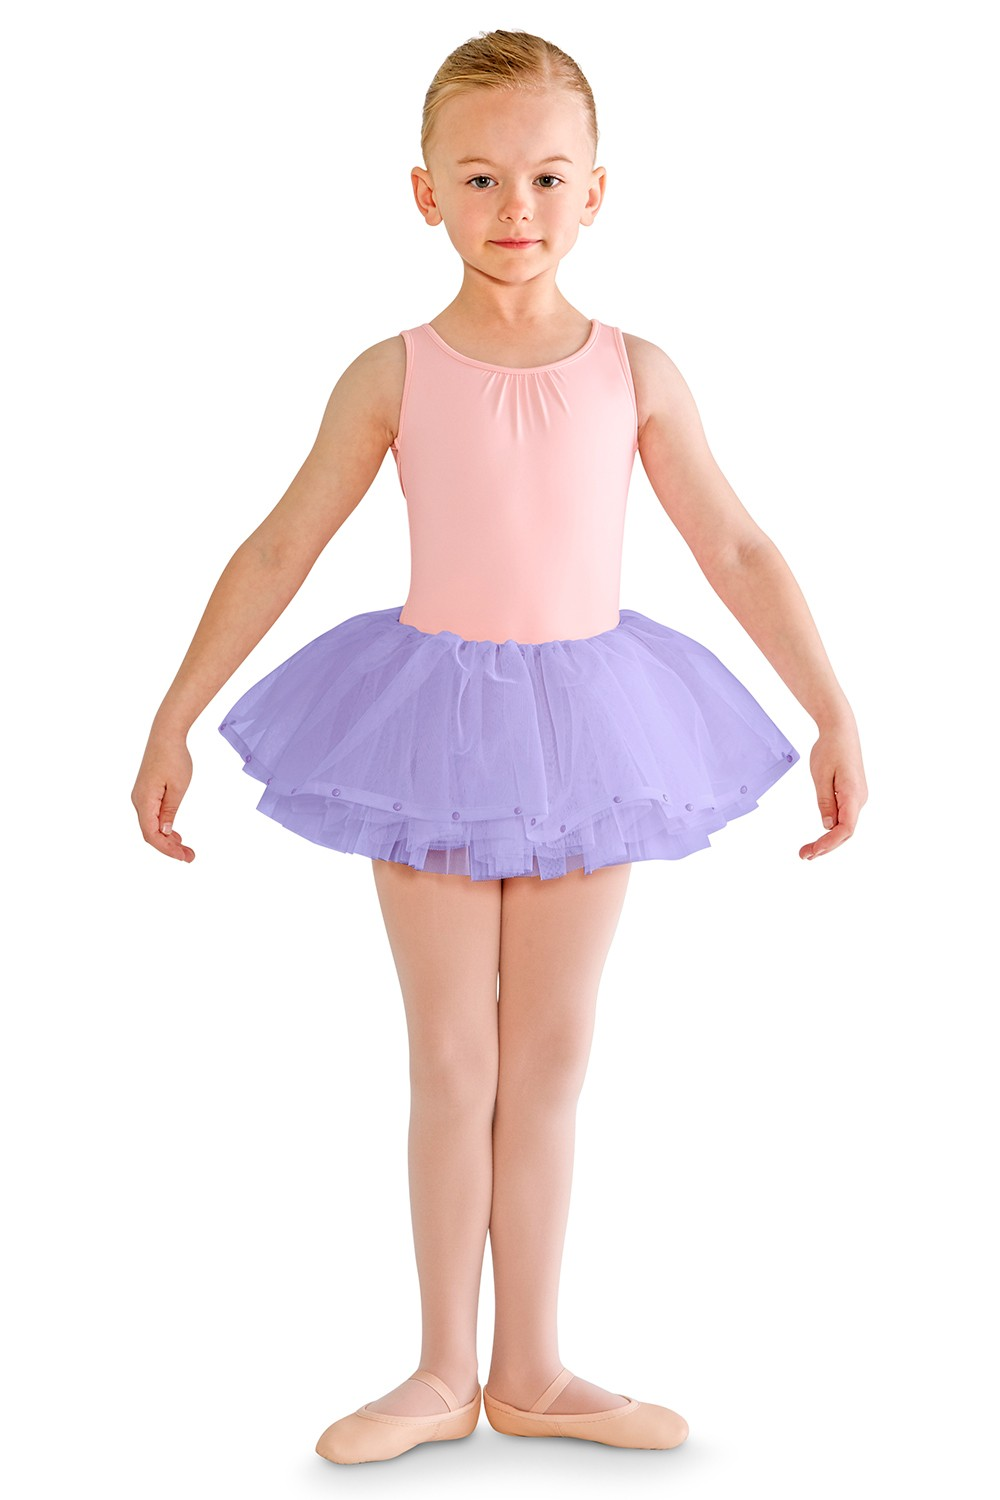 Perren Children's Dance Skirts